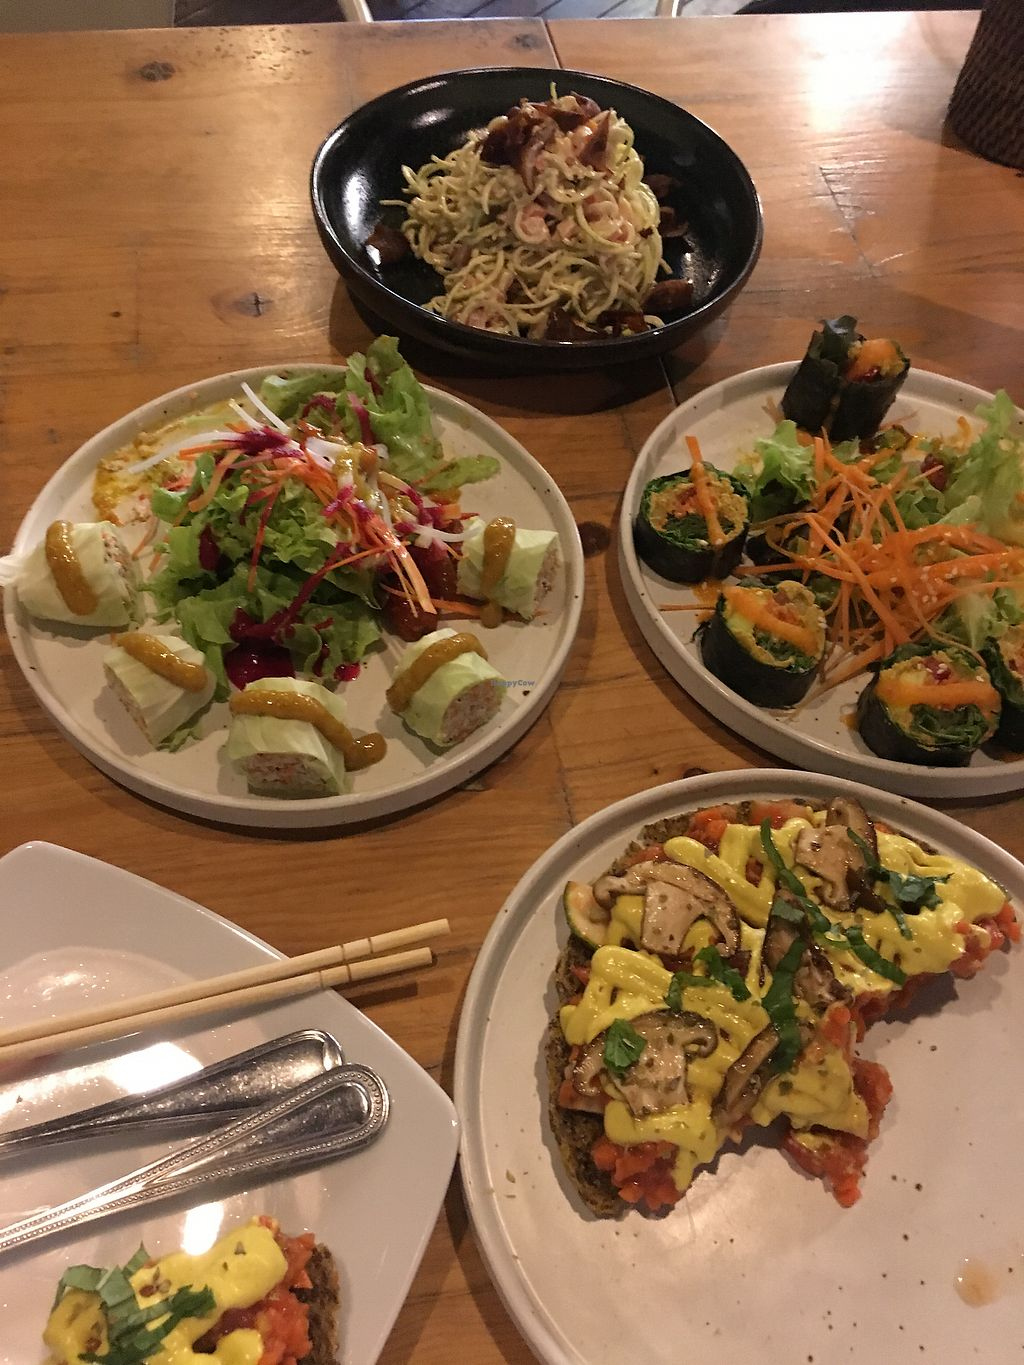 """Photo of Rasayana Raw Food Cafe  by <a href=""""/members/profile/LauraZr"""">LauraZr</a> <br/>Spring rolls, sushi, mushroom pizza & zoodles <br/> October 5, 2017  - <a href='/contact/abuse/image/3847/312027'>Report</a>"""